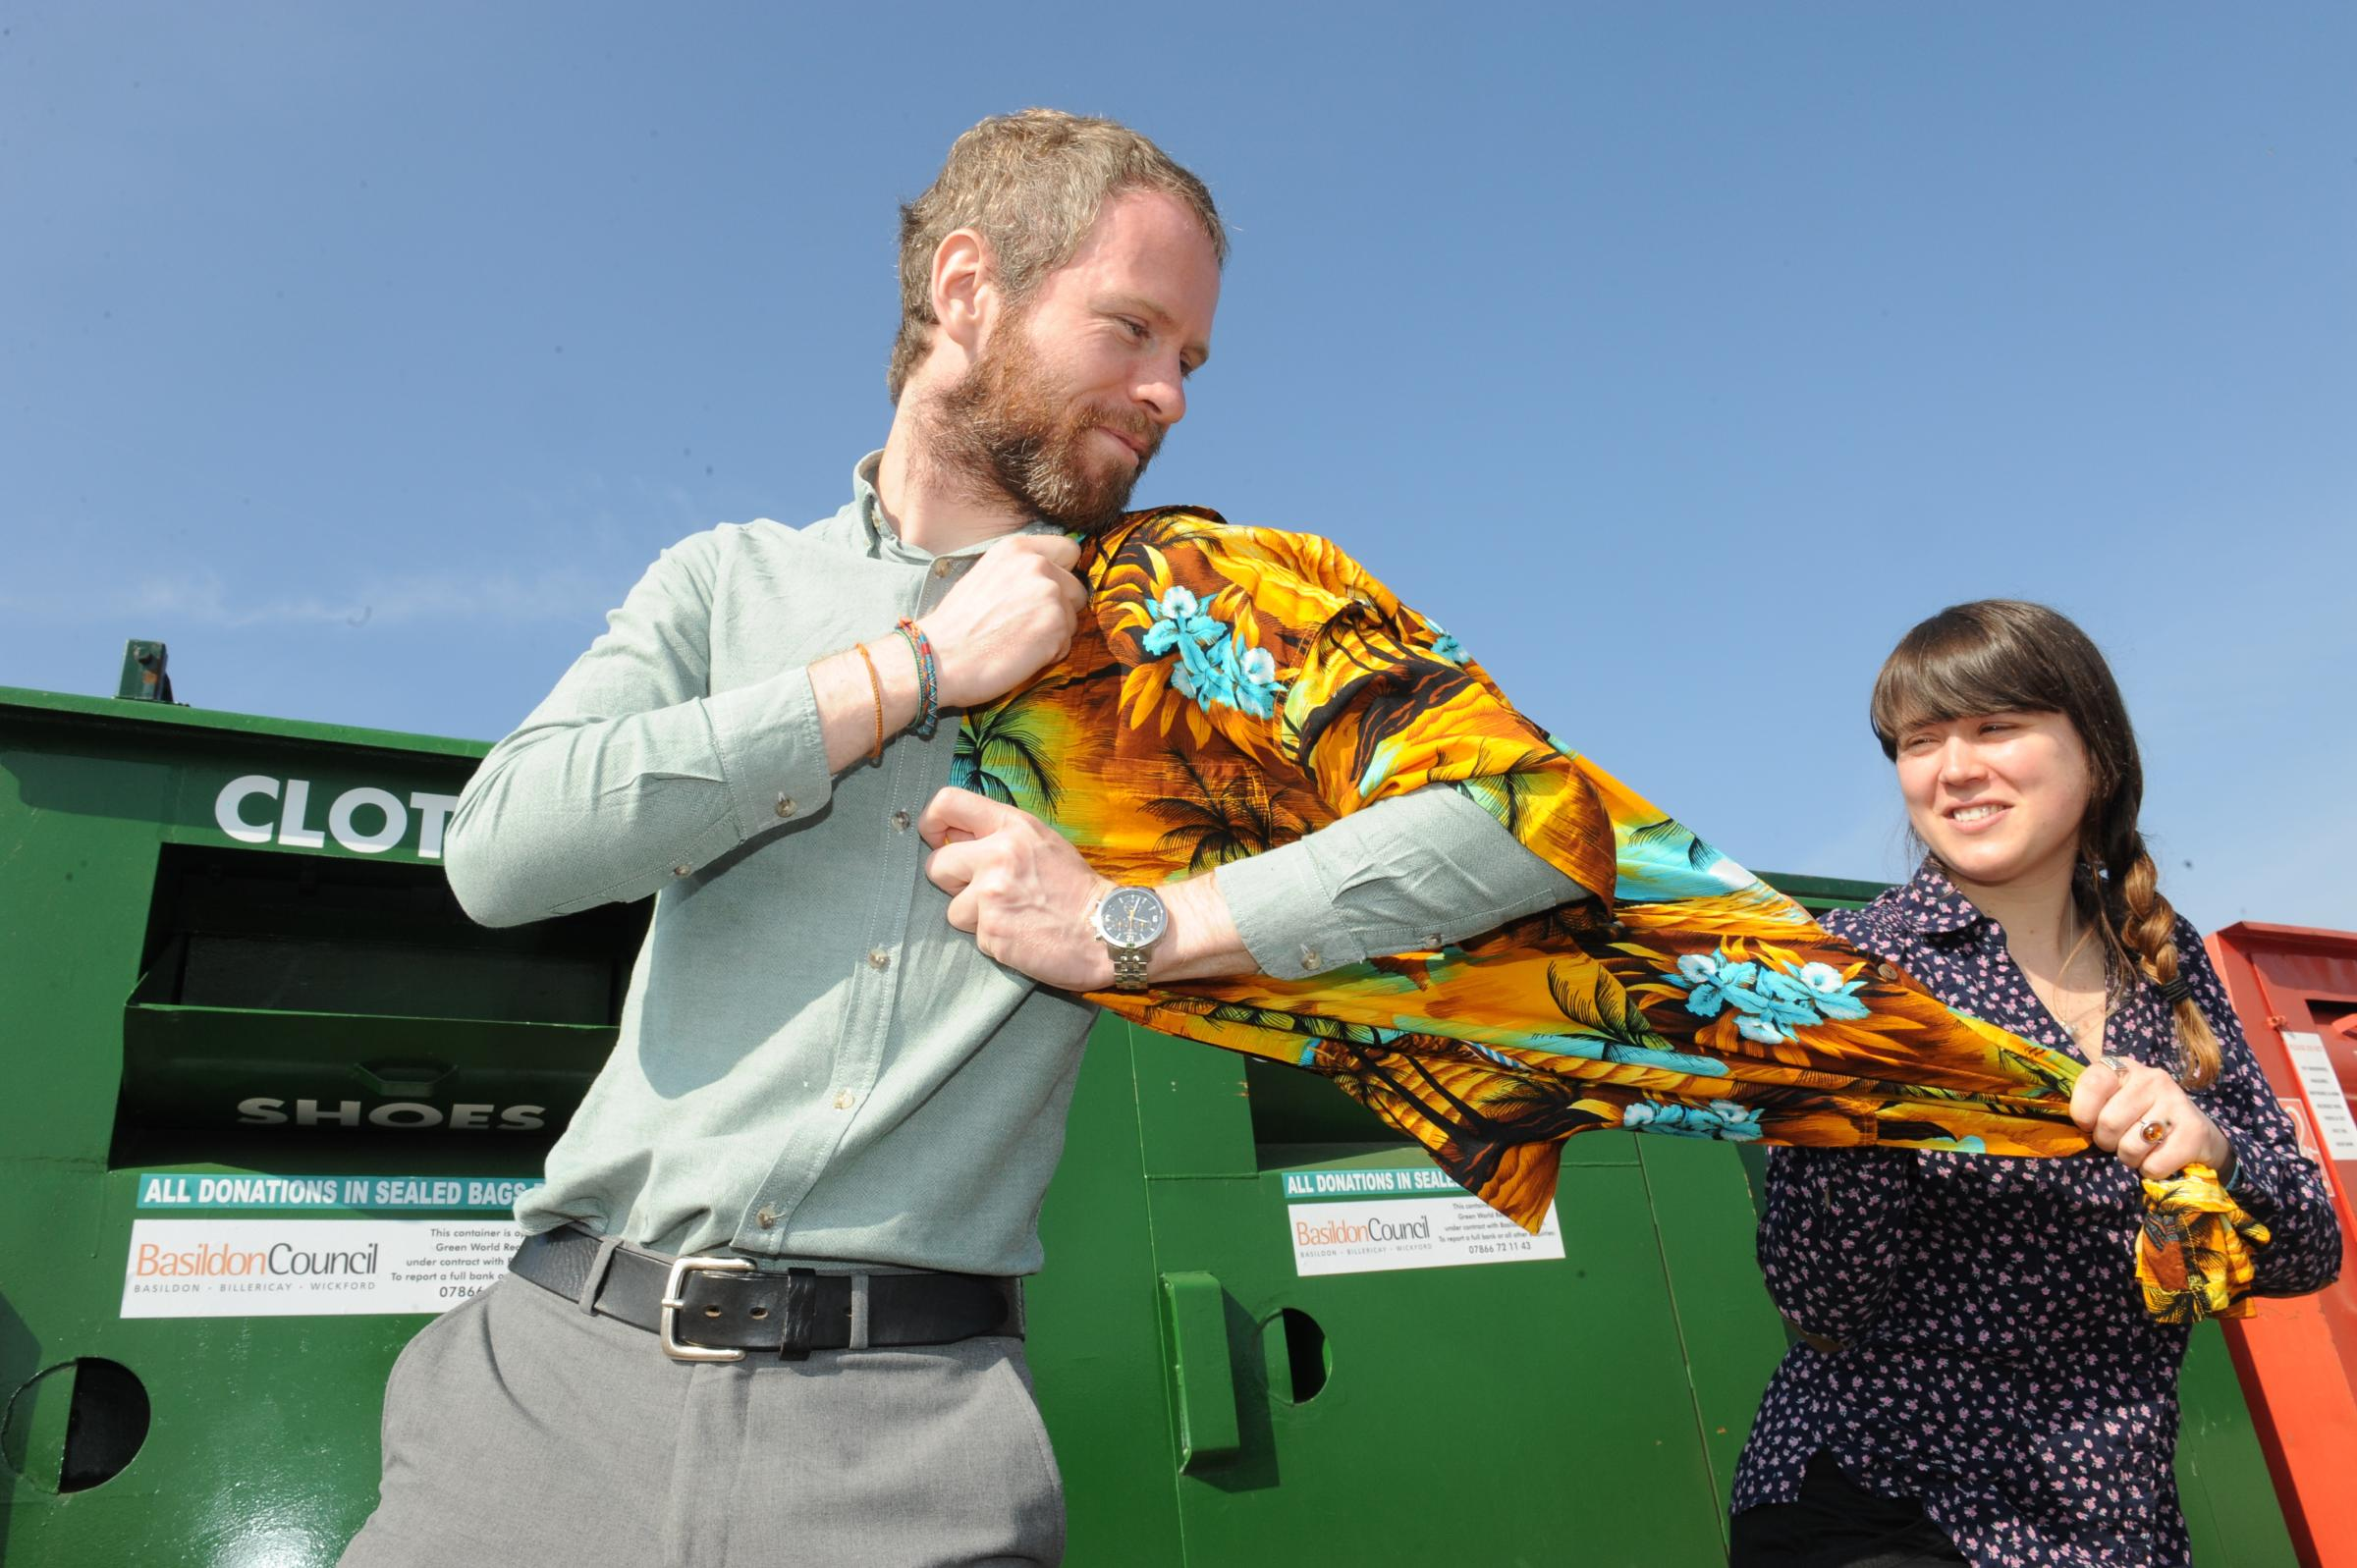 Getting shirty – recycling officer Courtney Groves tries to wrestle a dodgy shirt from colleague James Hendry